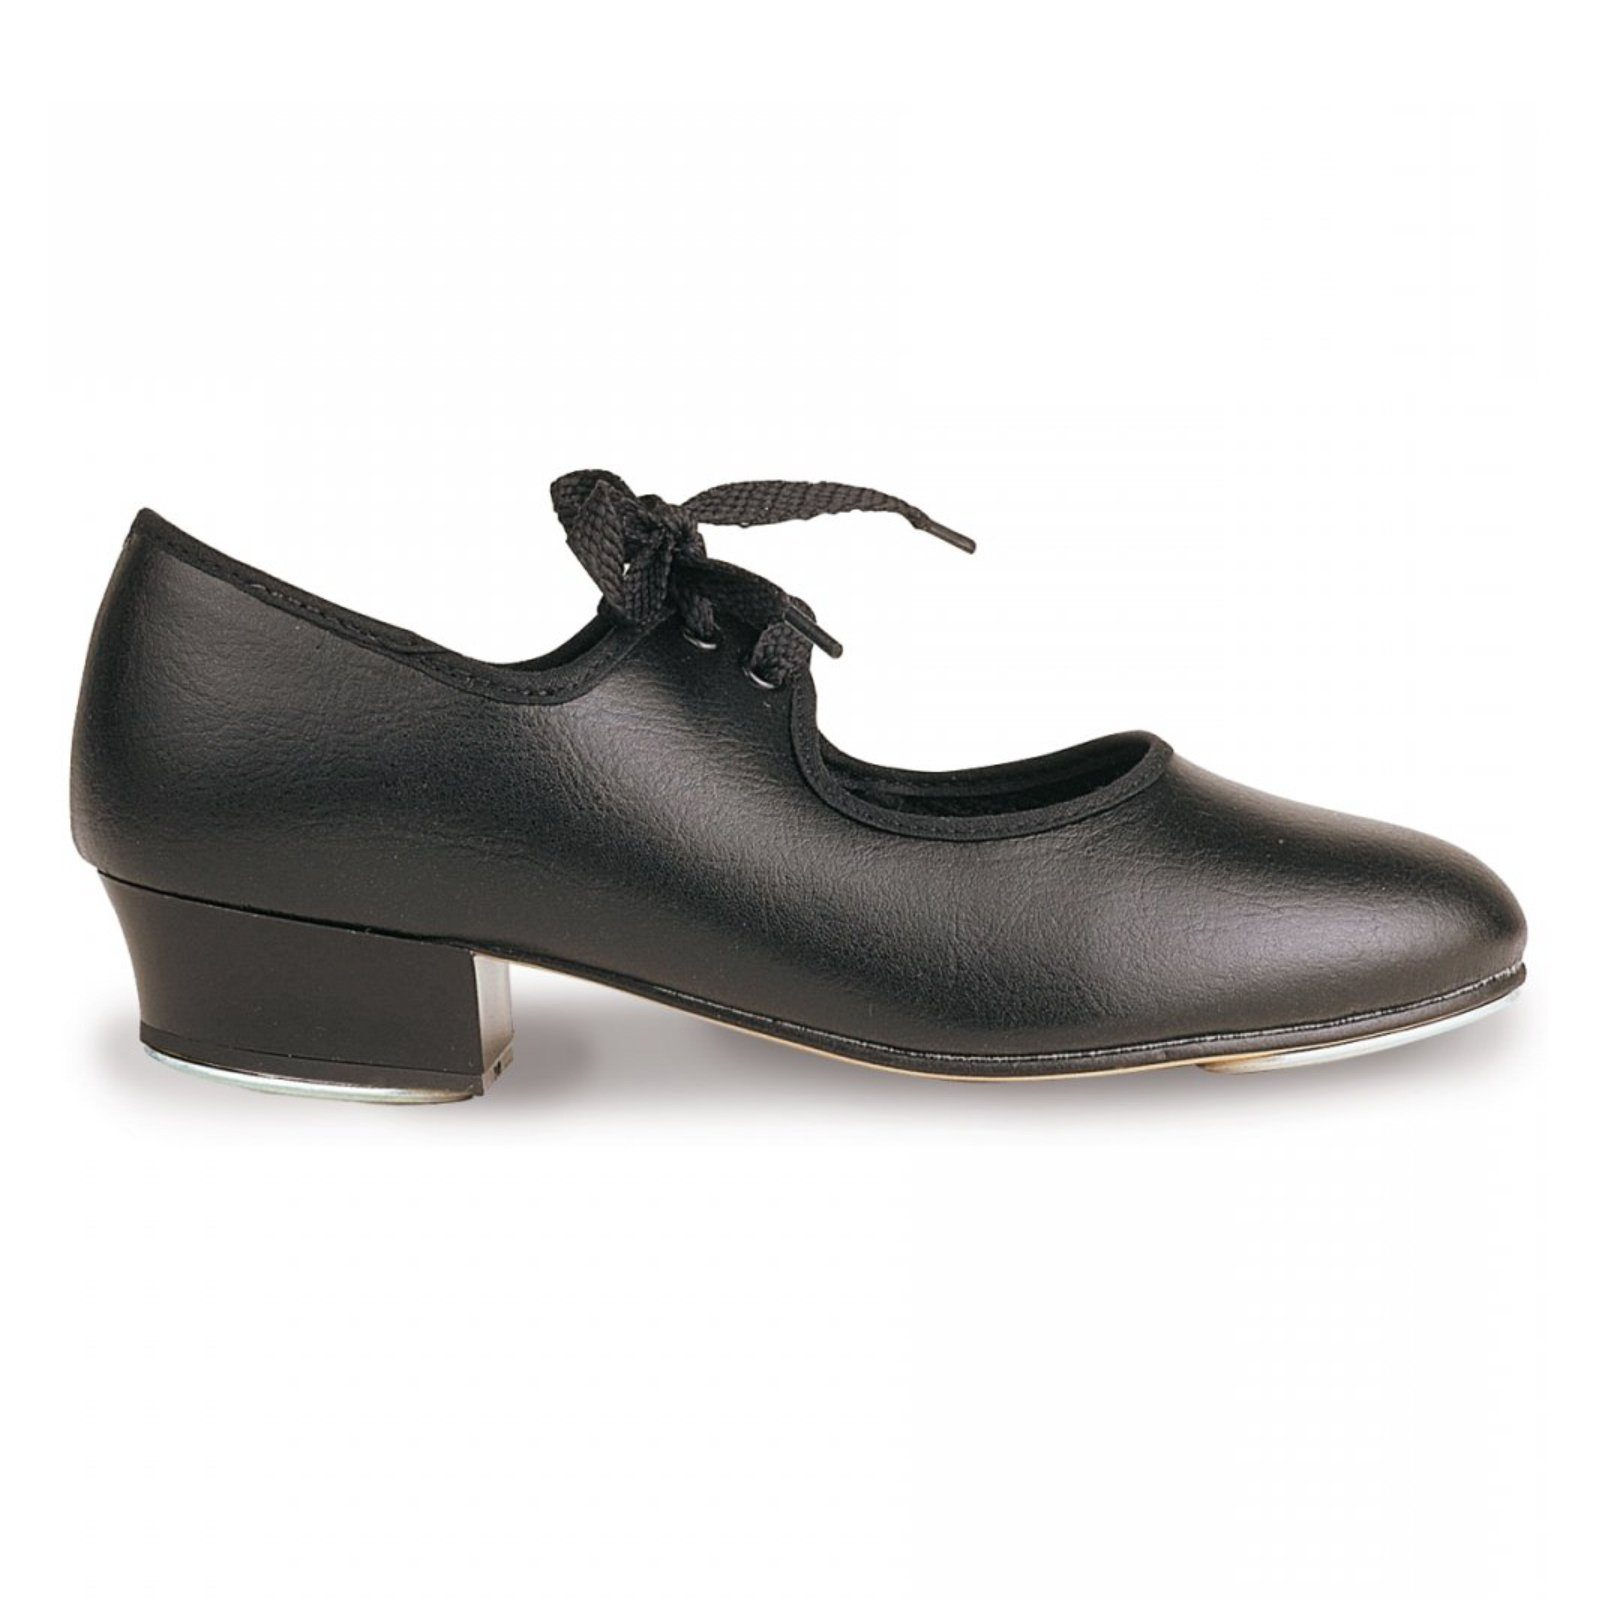 BLACK LEATHER OXFORD CUBAN HEEL TAP SHOES NO TOE TAPS FITTED